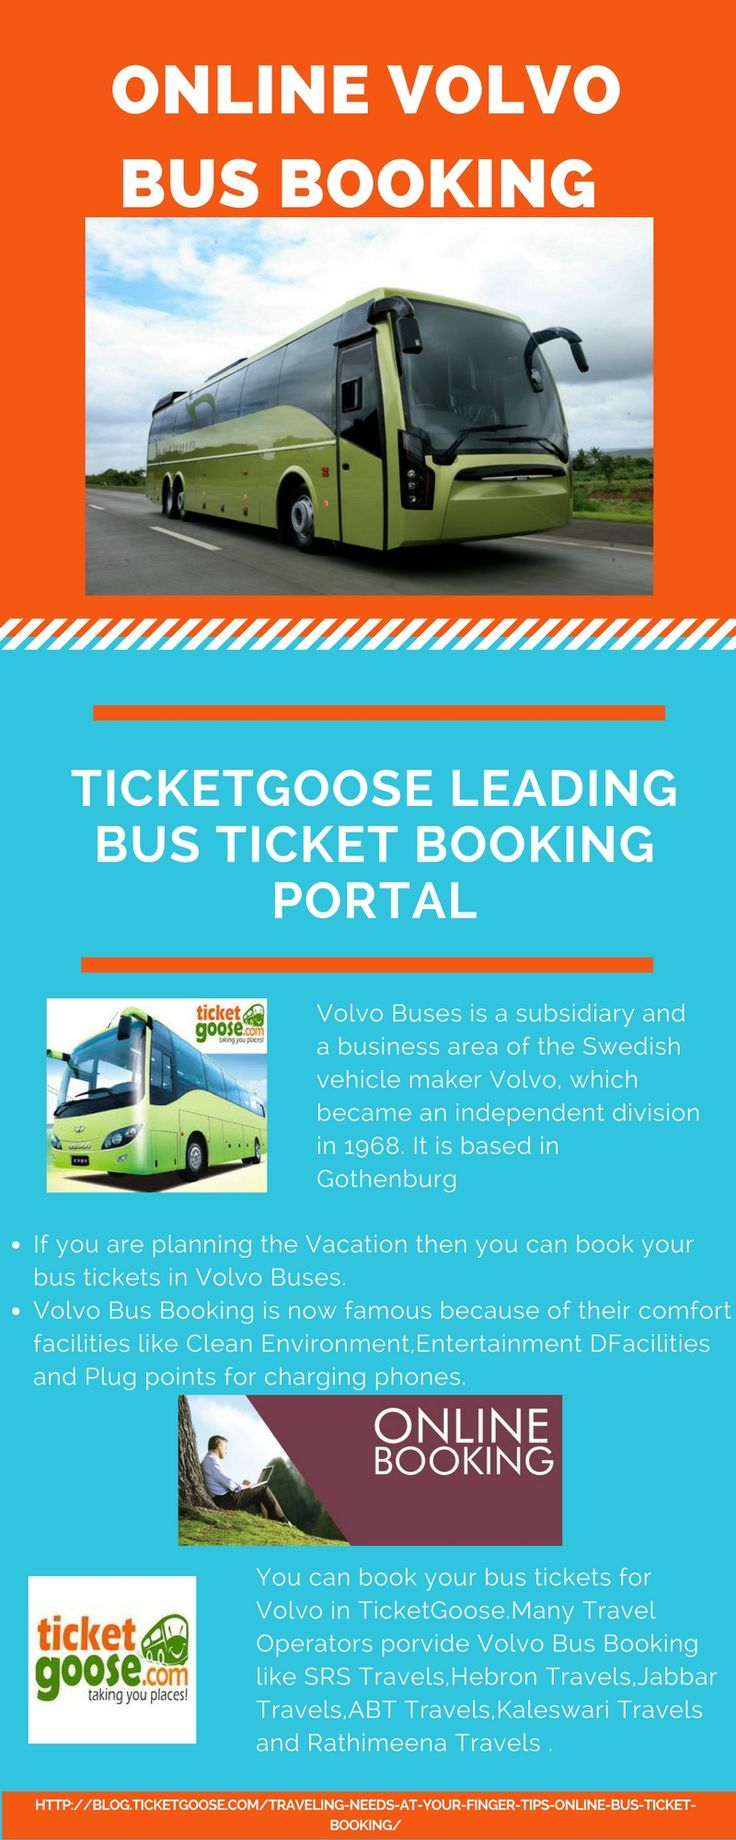 TicketGoose is the perfect place for Volvo bus booking if one is planning to travel in luxury http://blog.ticketgoose.com/traveling-needs-at-your-finger-tips-online-bus-ticket-booking/